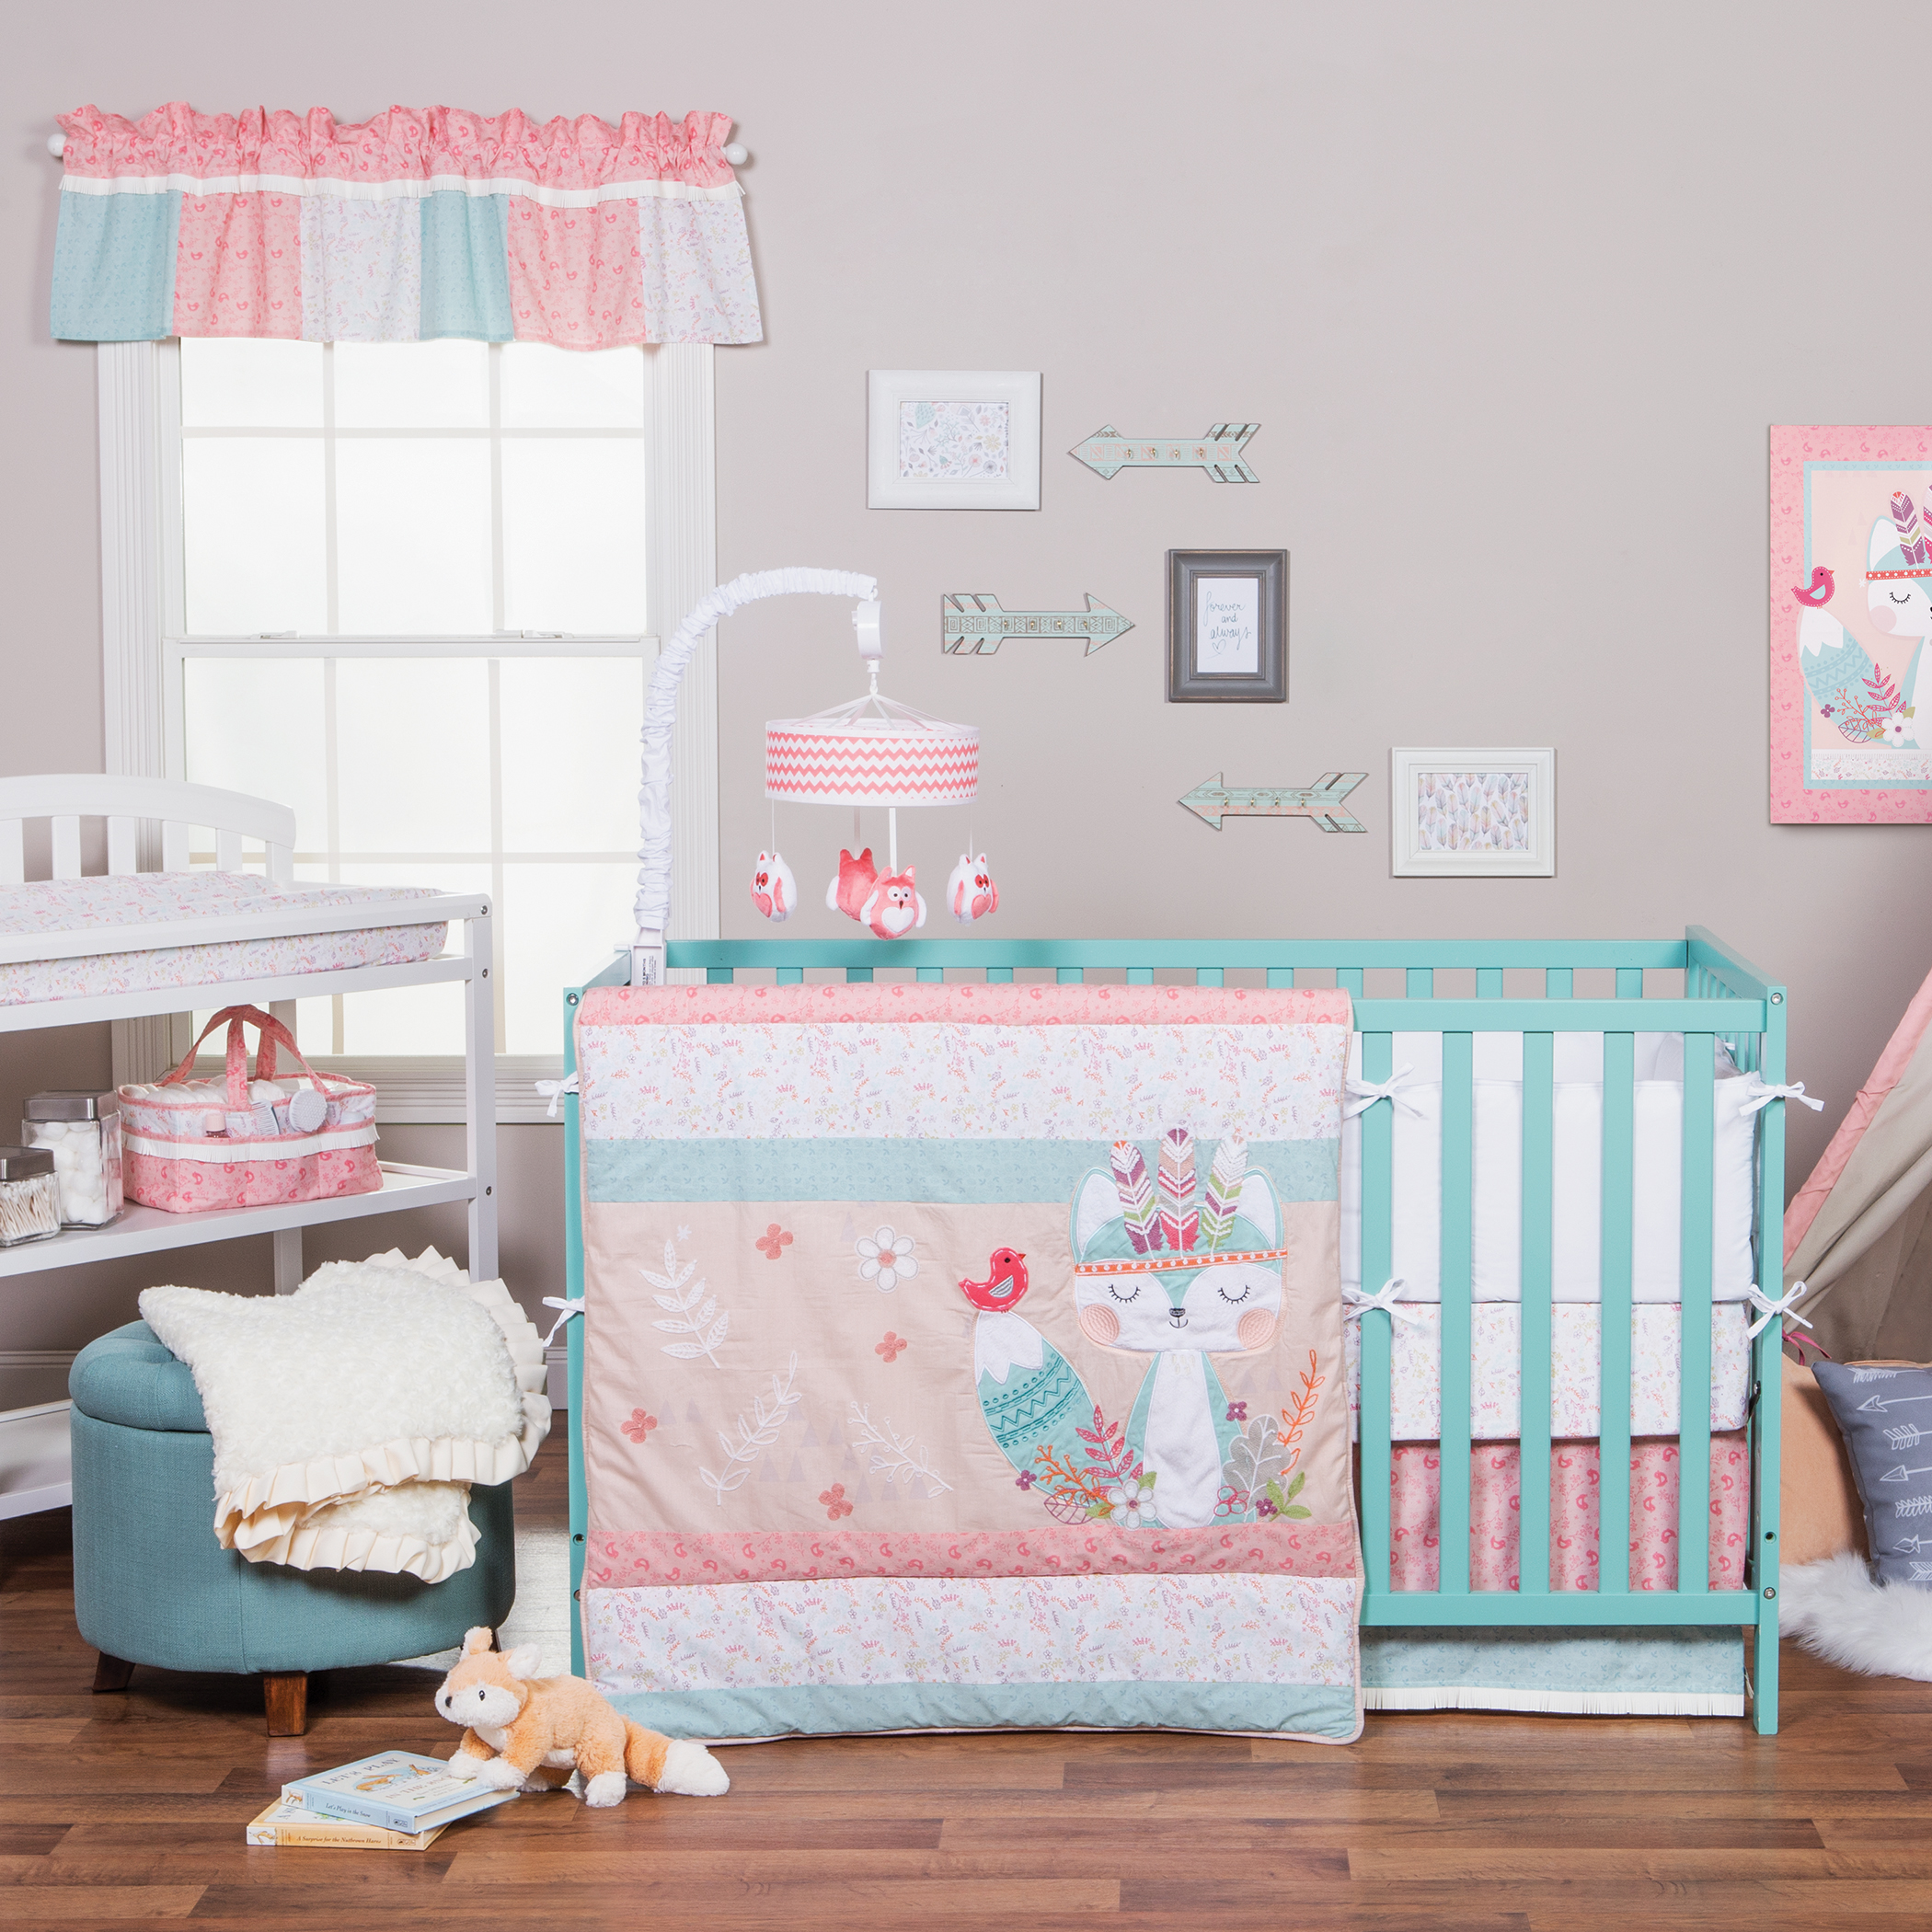 Full Crib Bedding Sets Trend Lab Wild Forever 3 Piece Crib Bedding Set